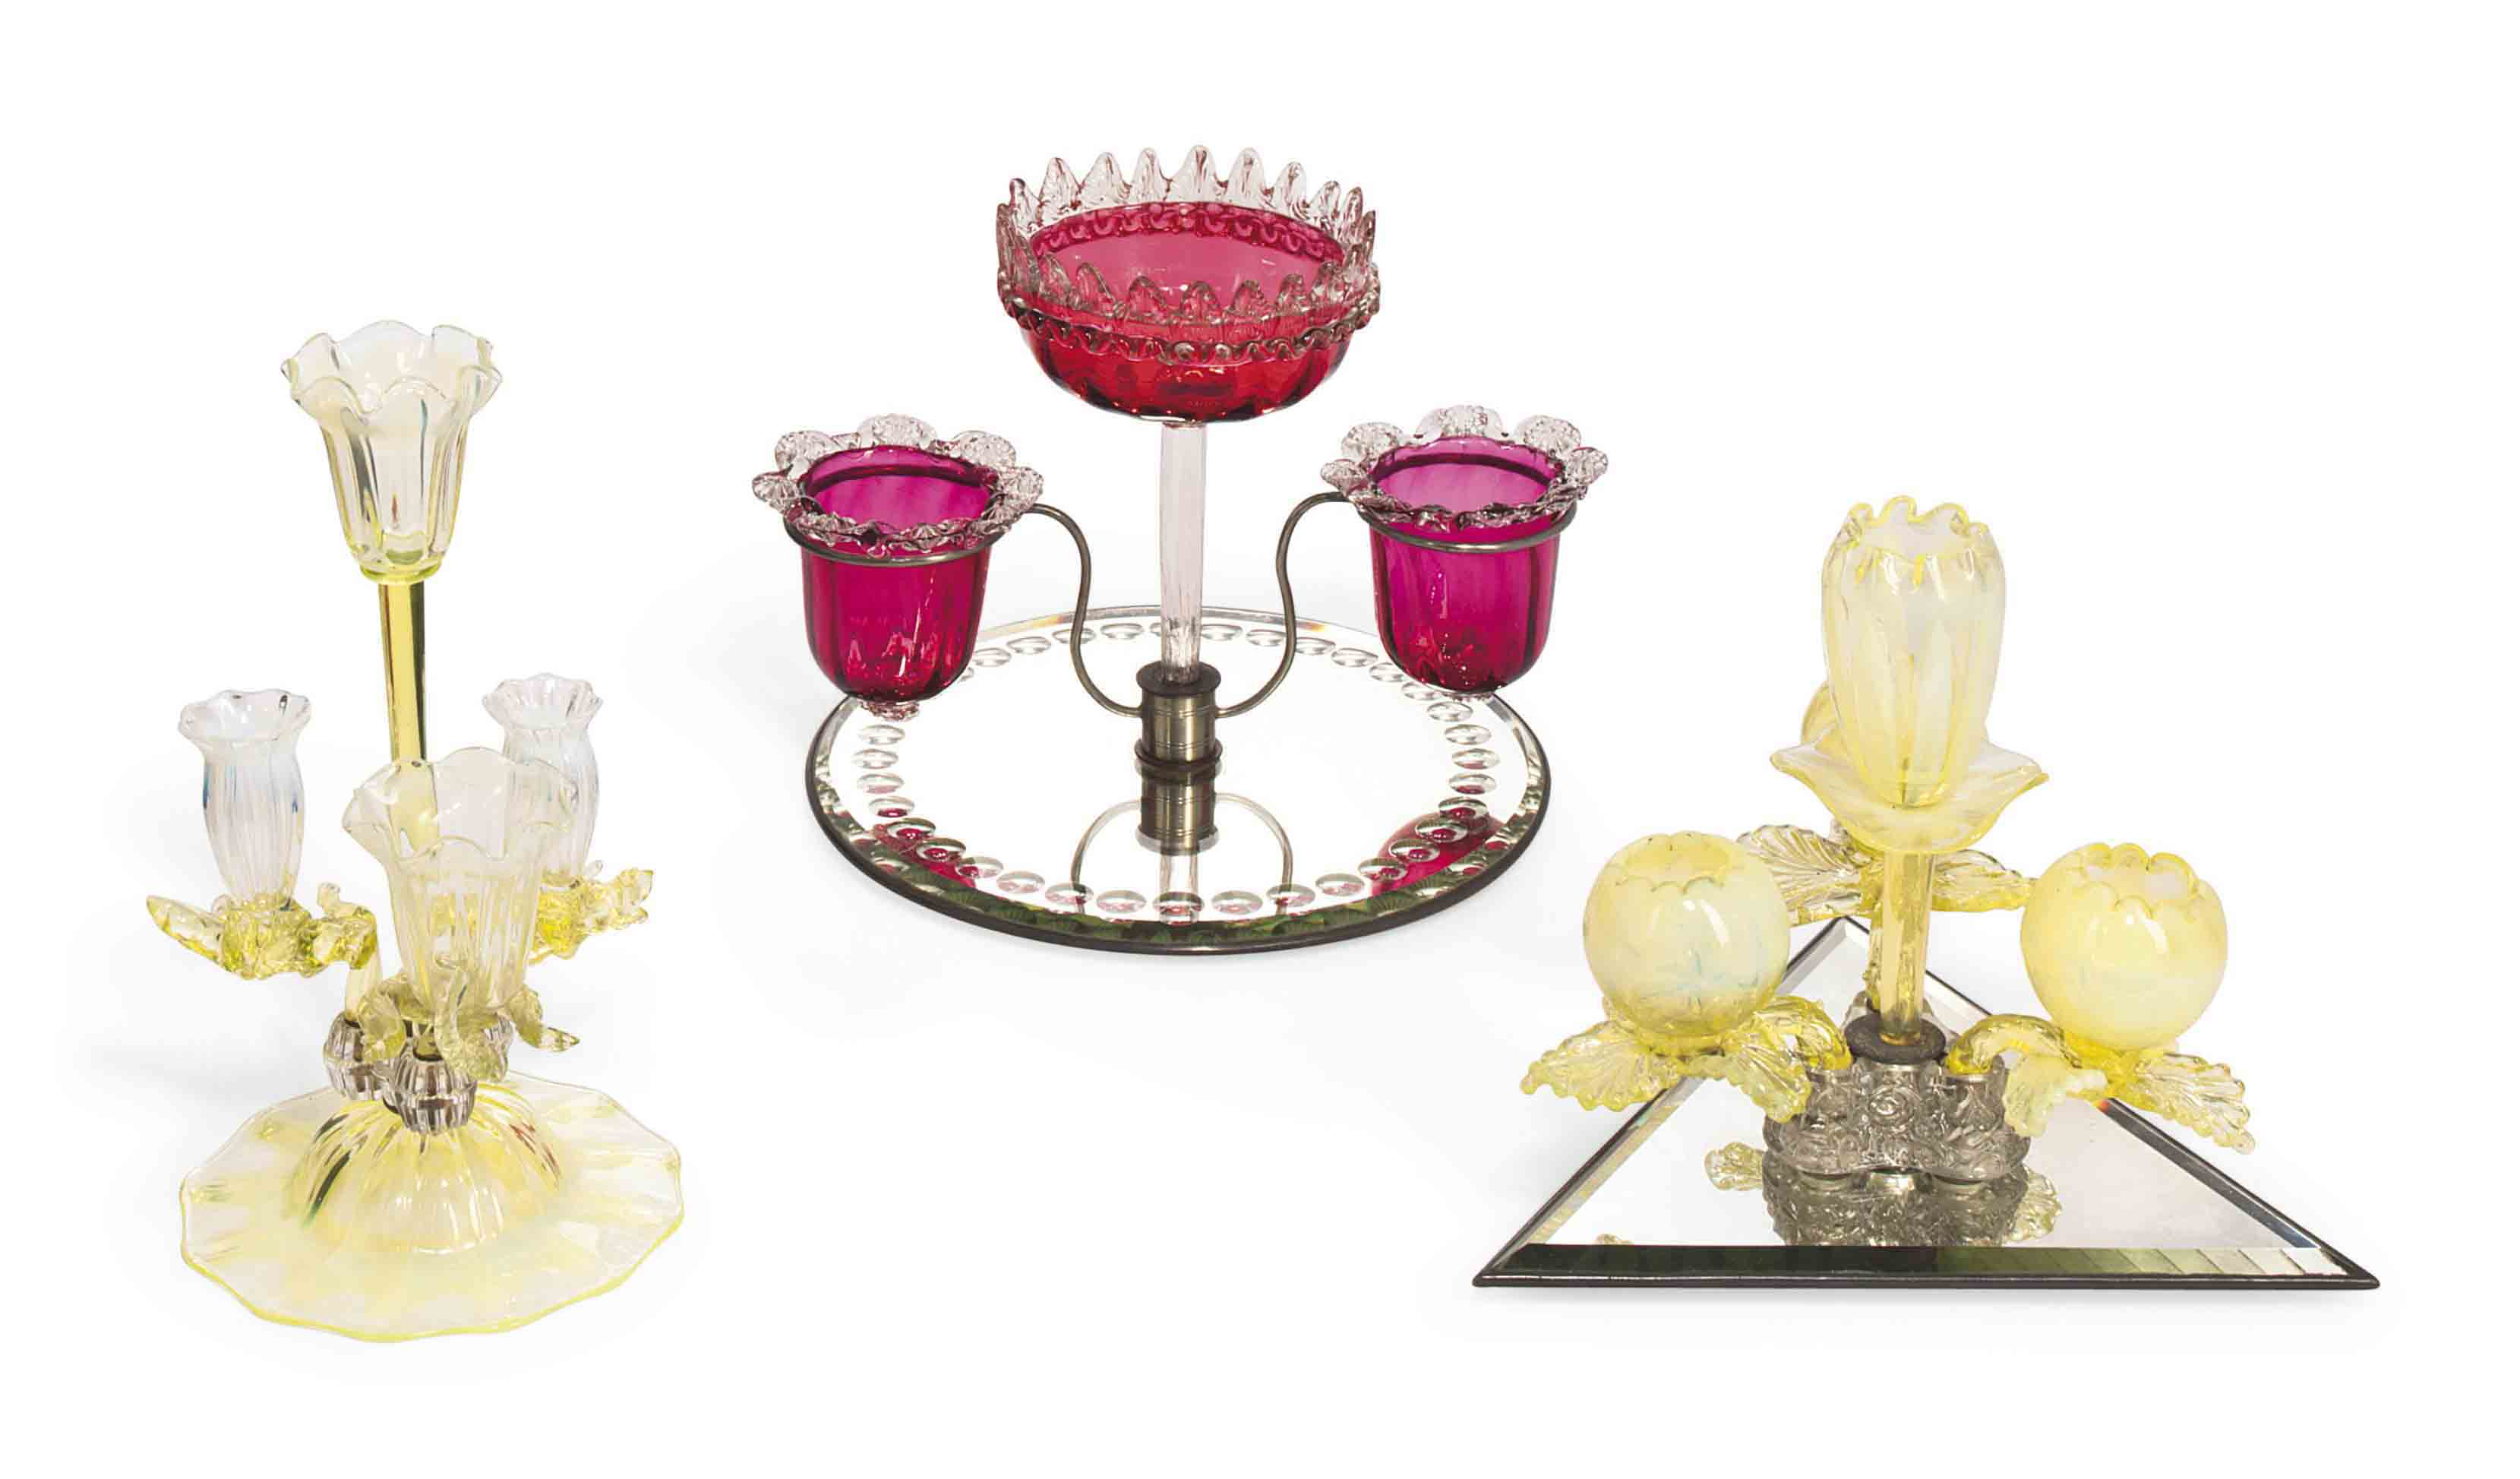 THREE SMALL GLASS CENTREPIECES